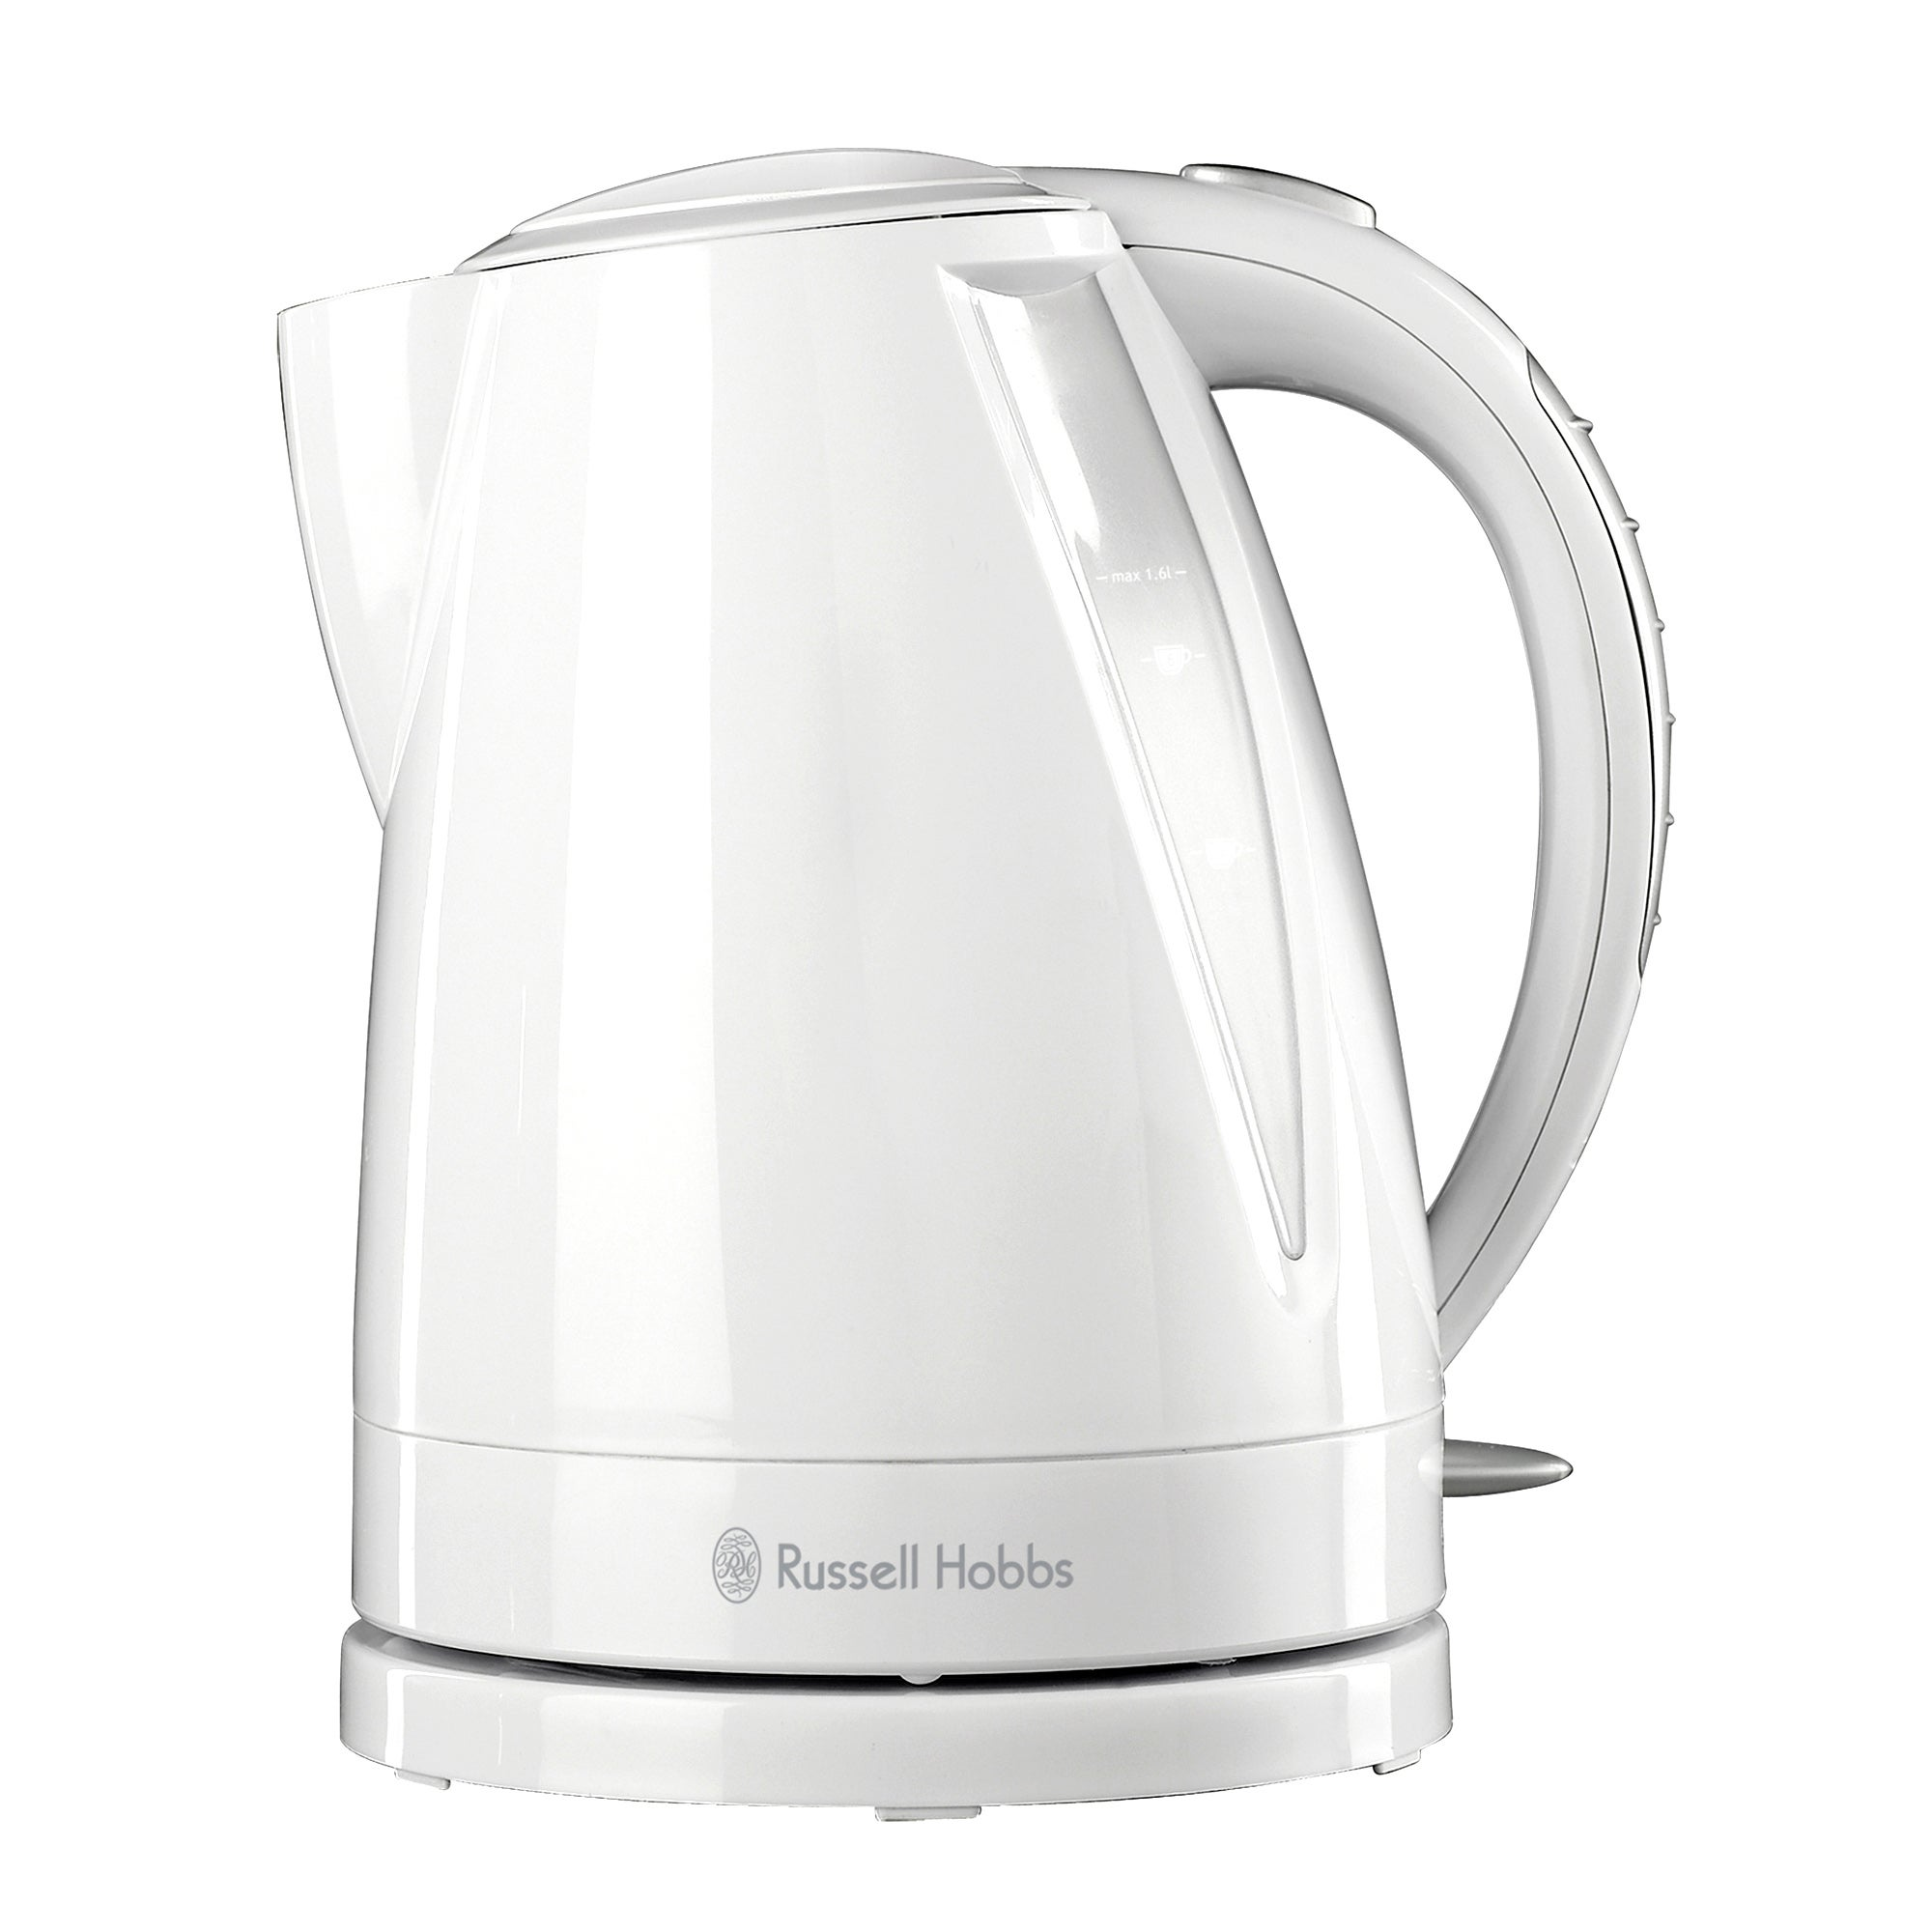 Russell Hobbs Buxton 15075 White Jug Kettle